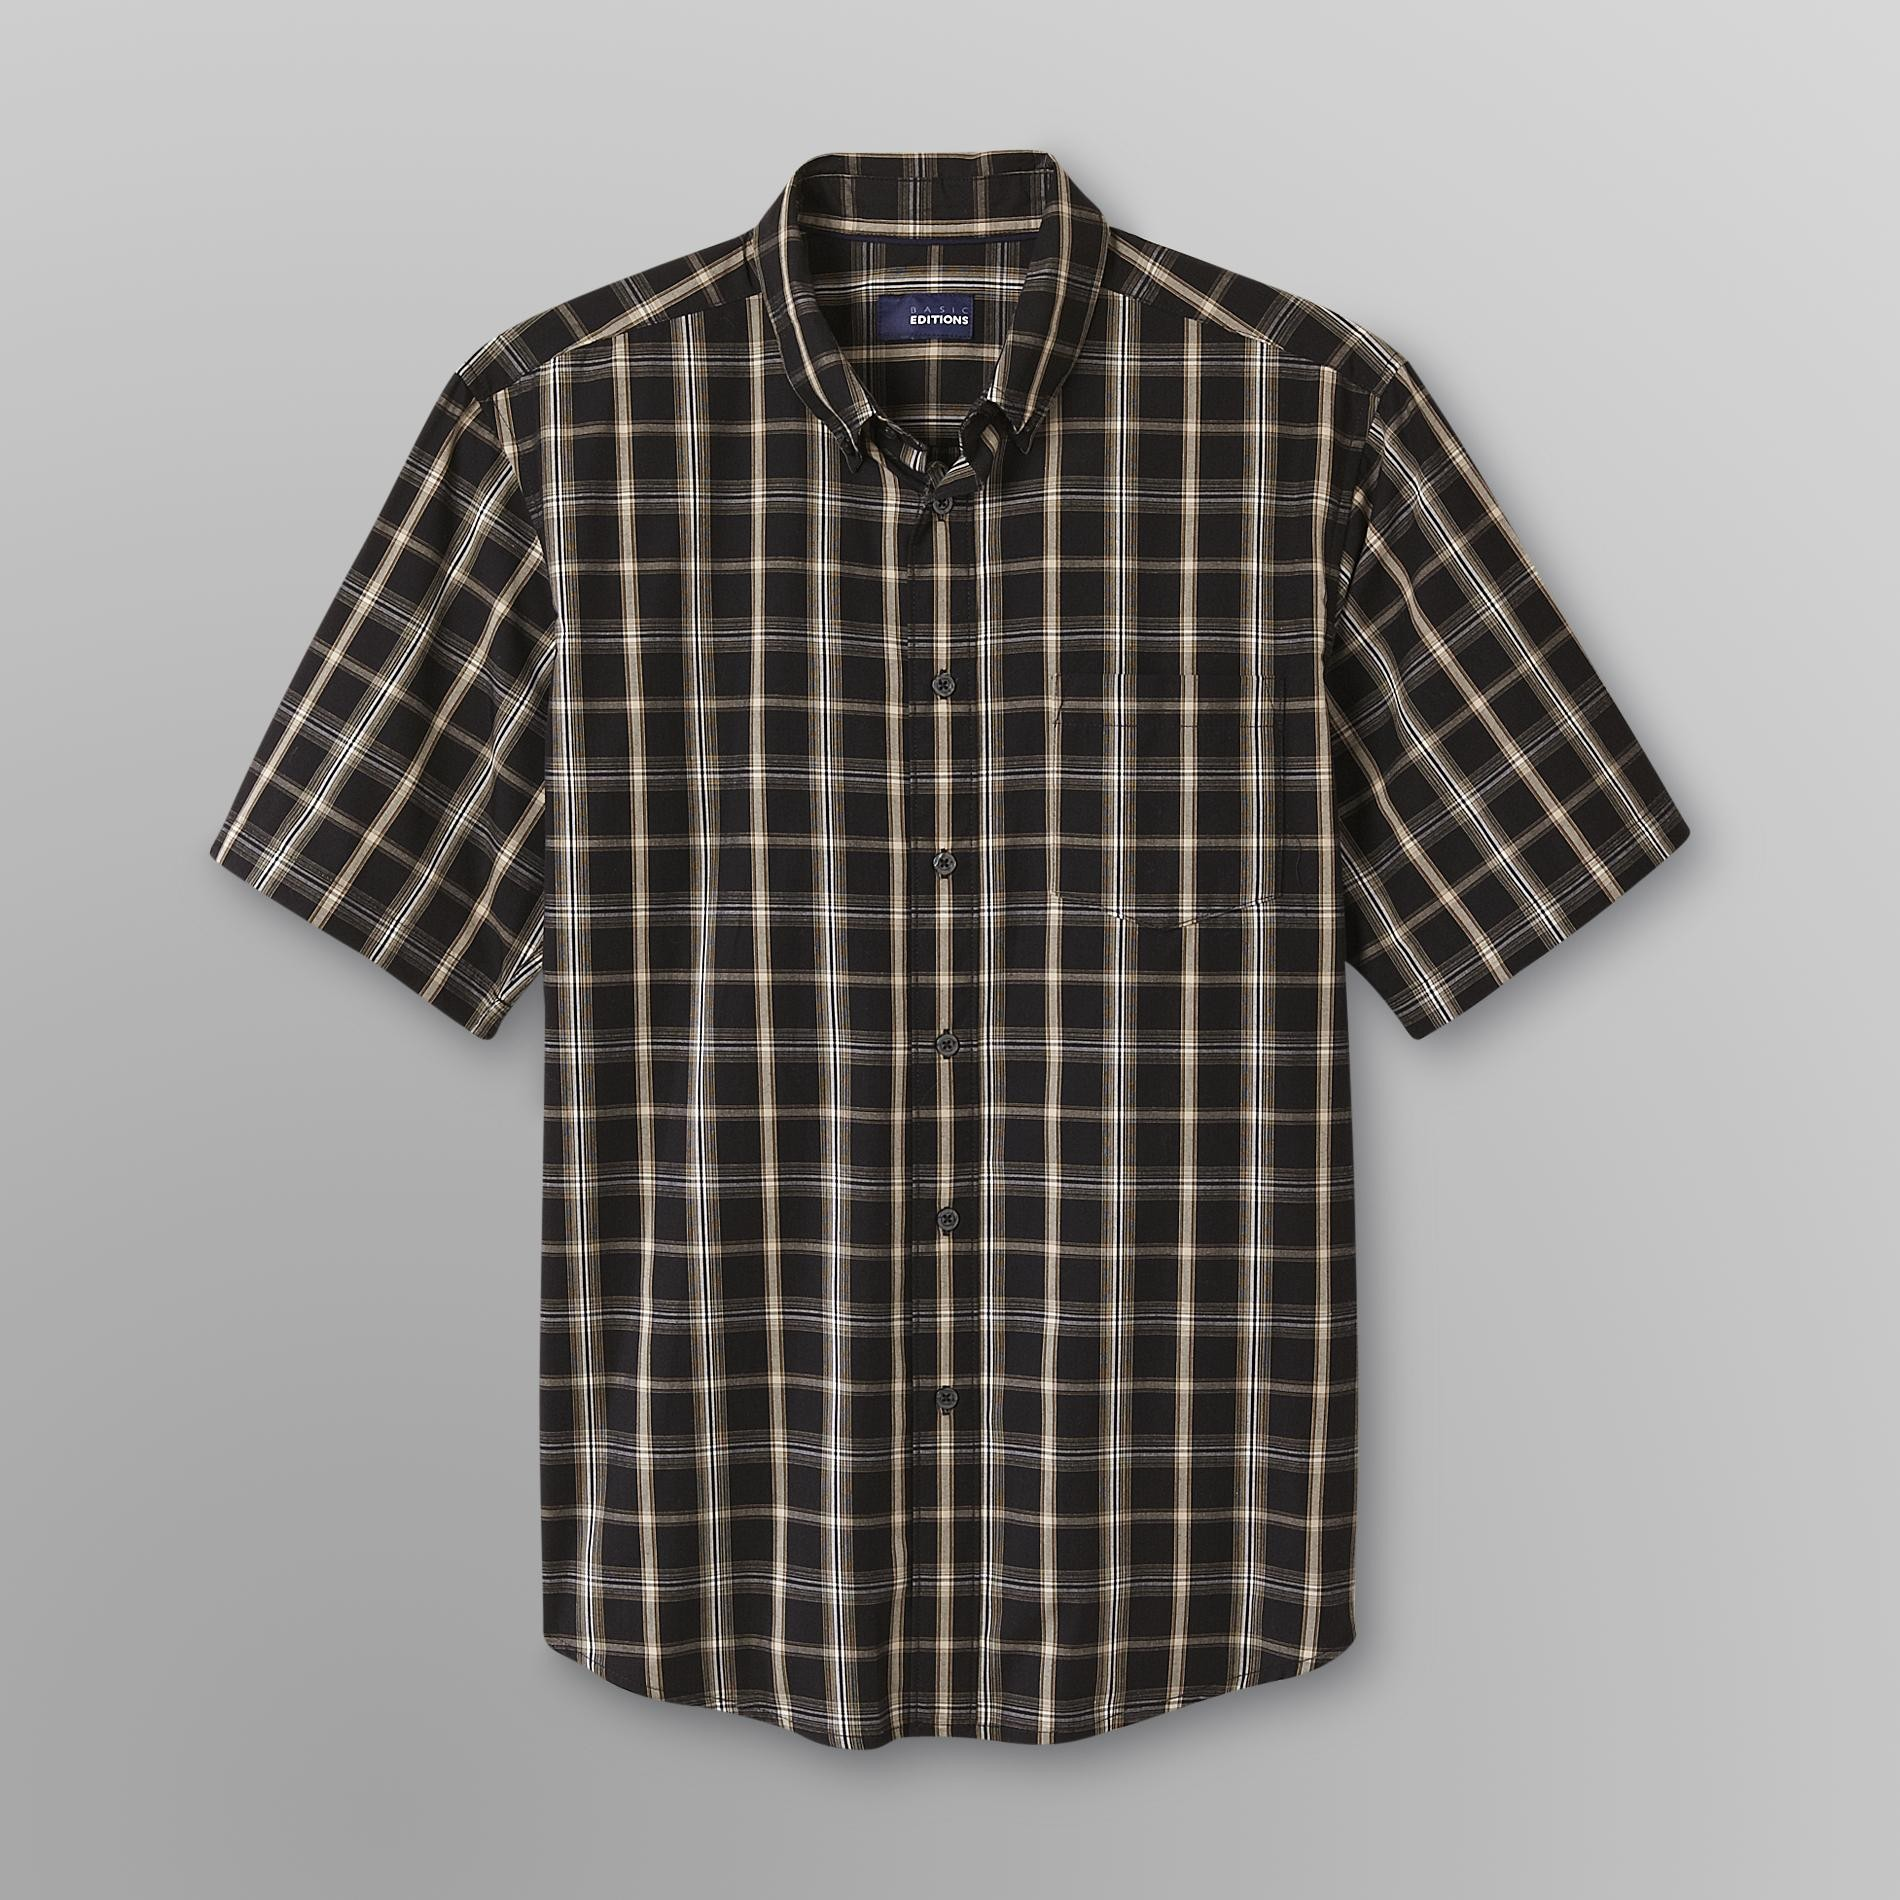 Basic Editions Men's Big & Tall Easy Care Woven Shirt - Plaid at Kmart.com